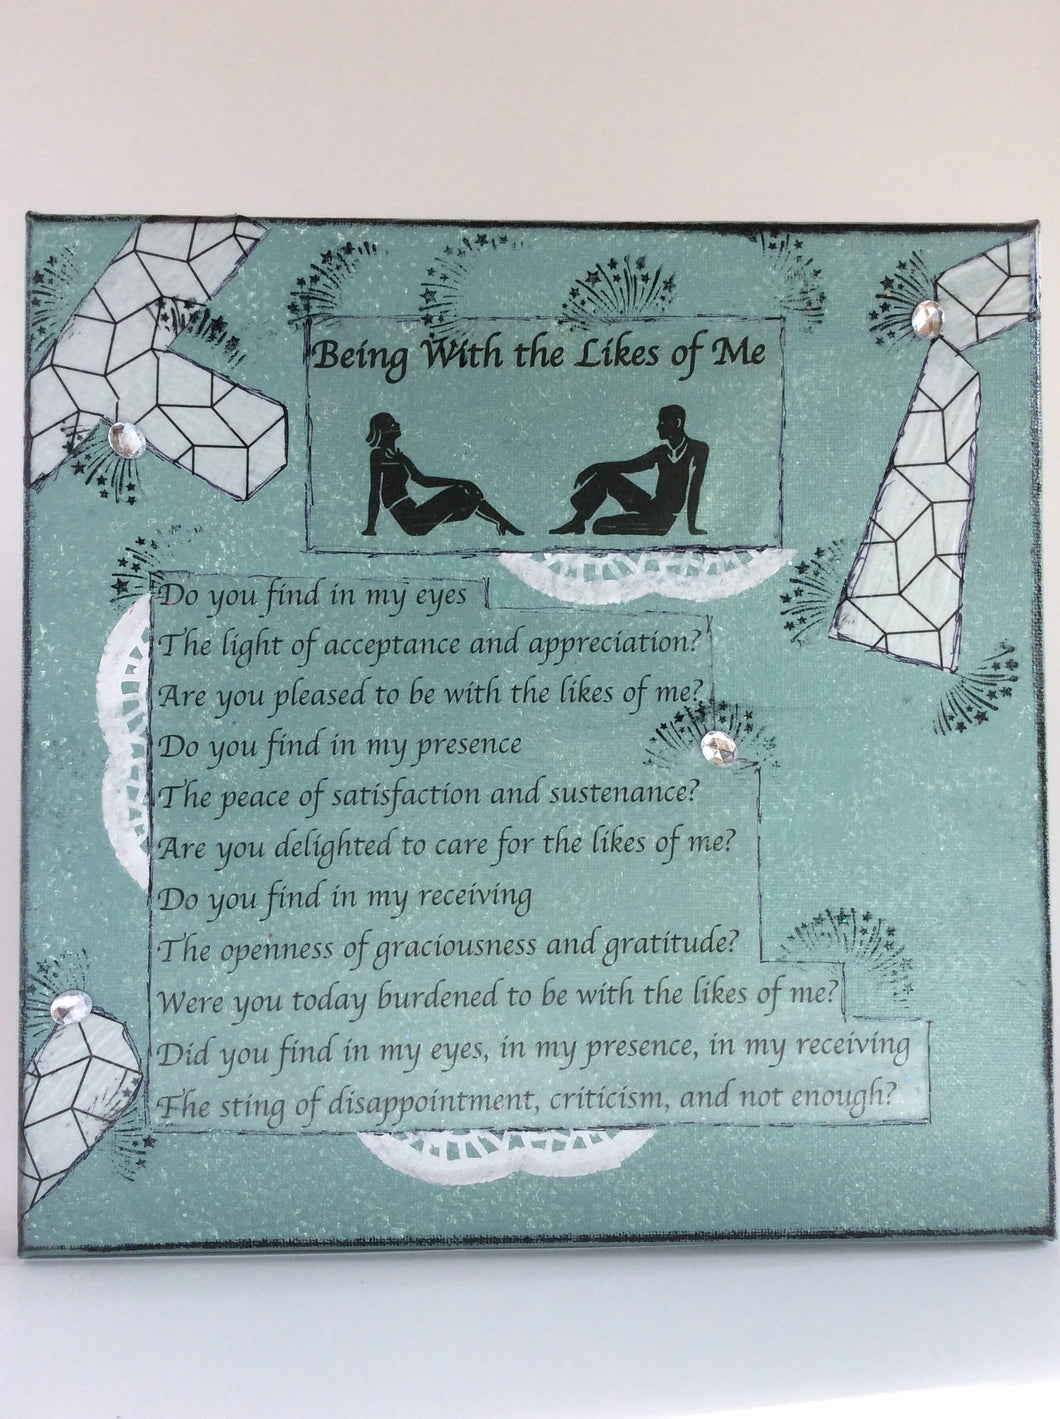 Being With the Likes of Me an original poem on canvas from poempieces.com in shadow teal